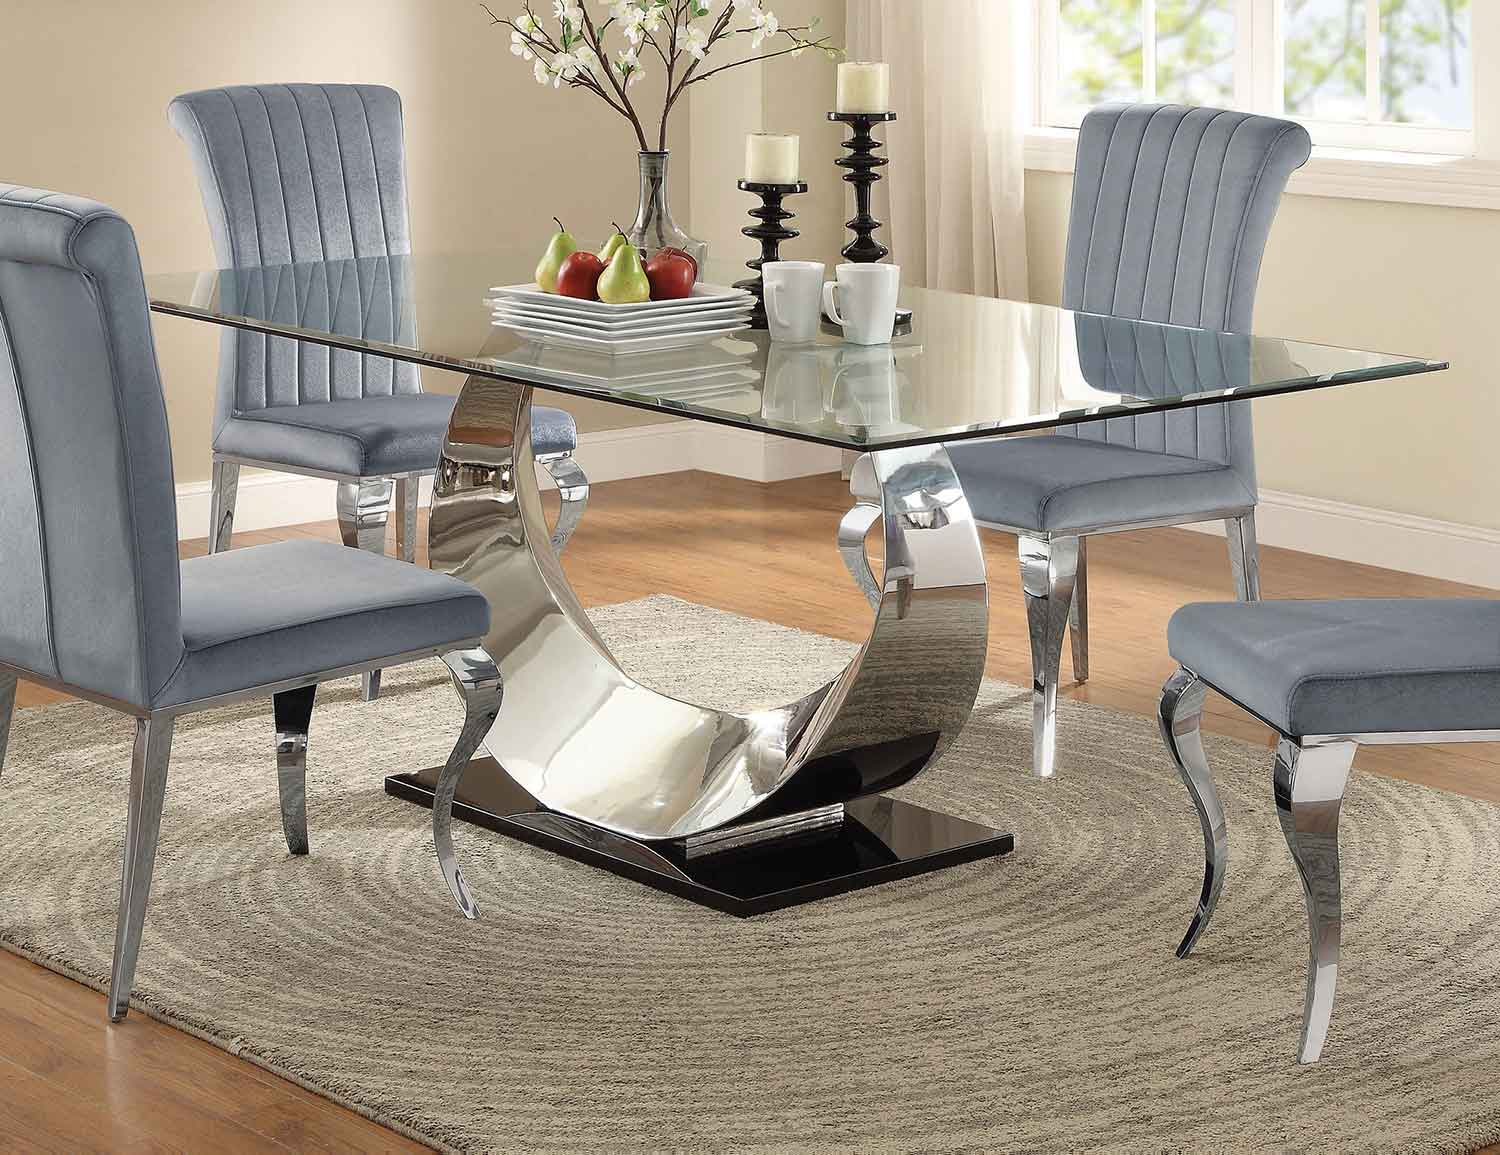 Picture of: Coaster Manessier Rectangular Glass Dining Table Chrome 107051 At Homelement Com